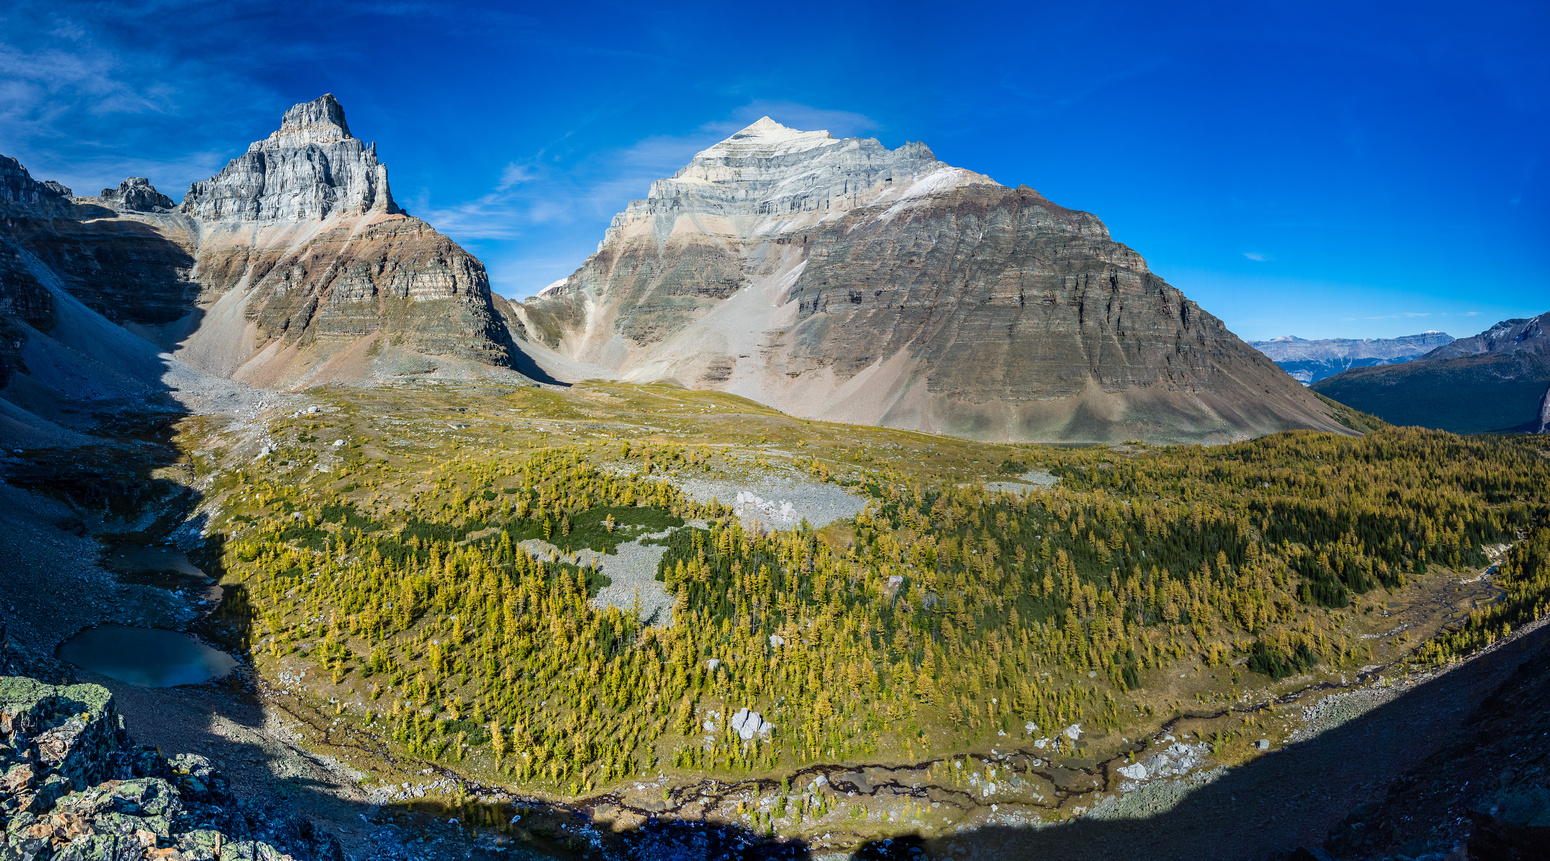 Great views of Larch Valley with Pinnacle (L) and Mount Temple (R) looming above.